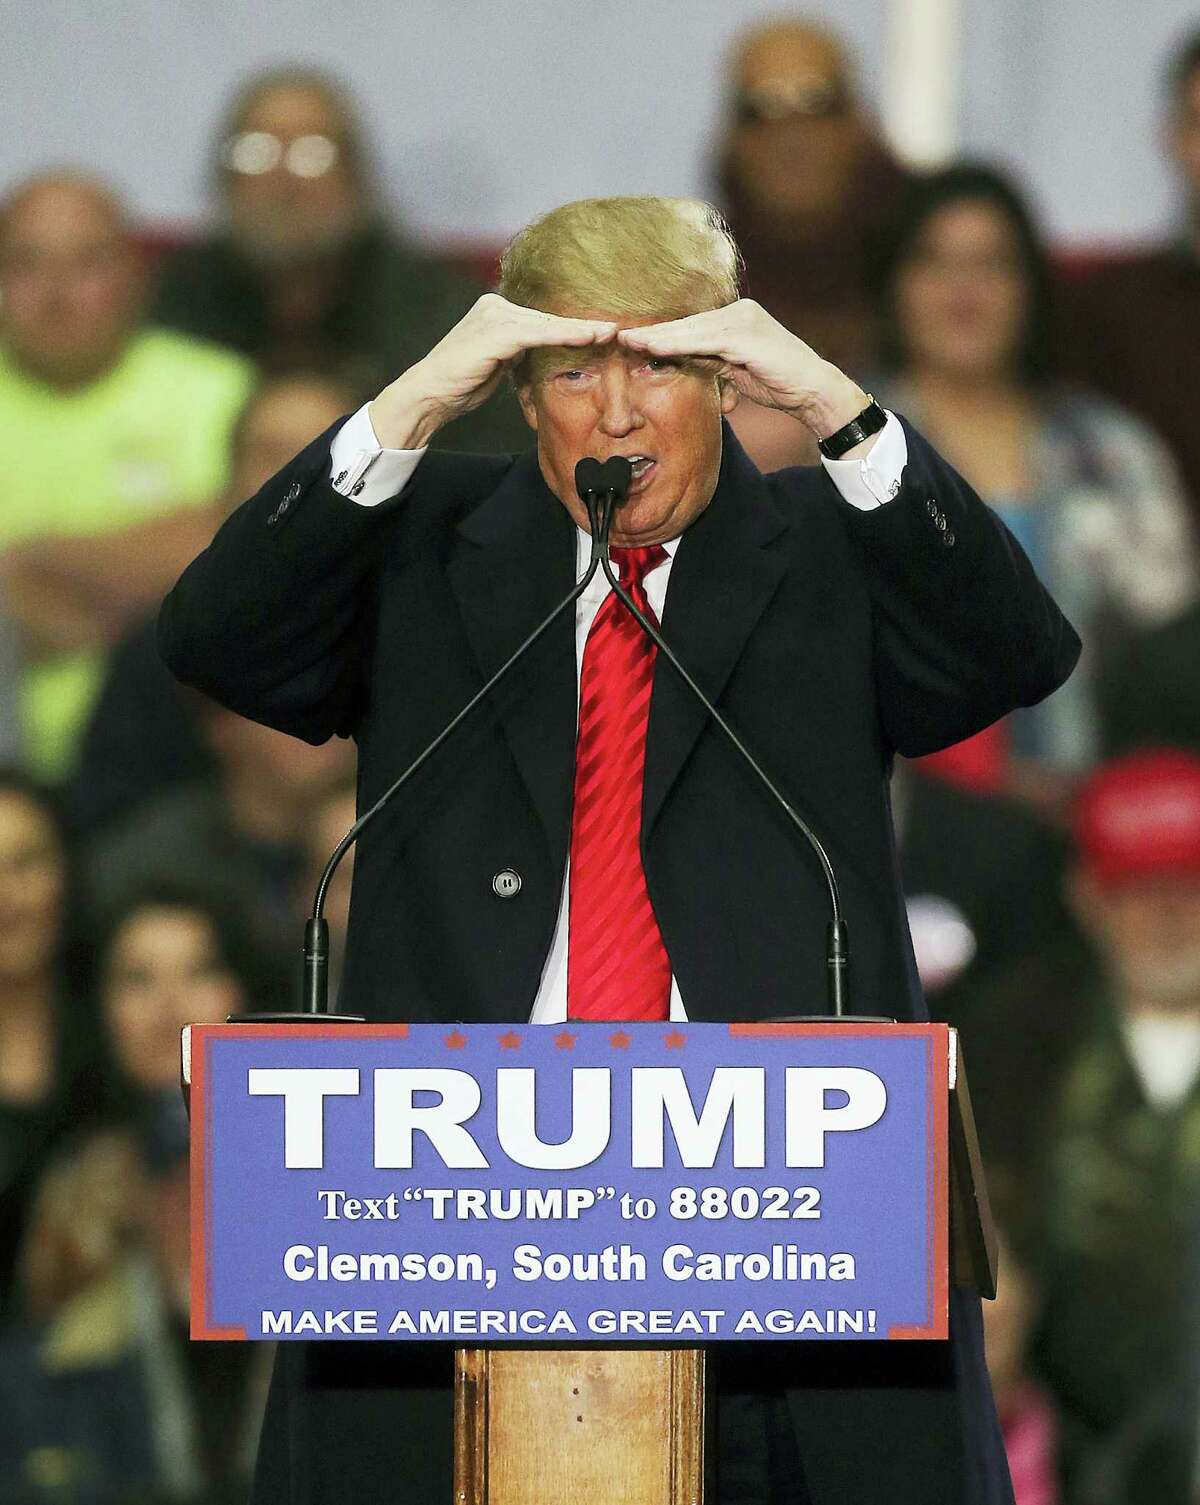 Republican presidential candidate Donald Trump strains to see as he speaks during a rally at Clemson University Wednesday in Pendleton, S.C.